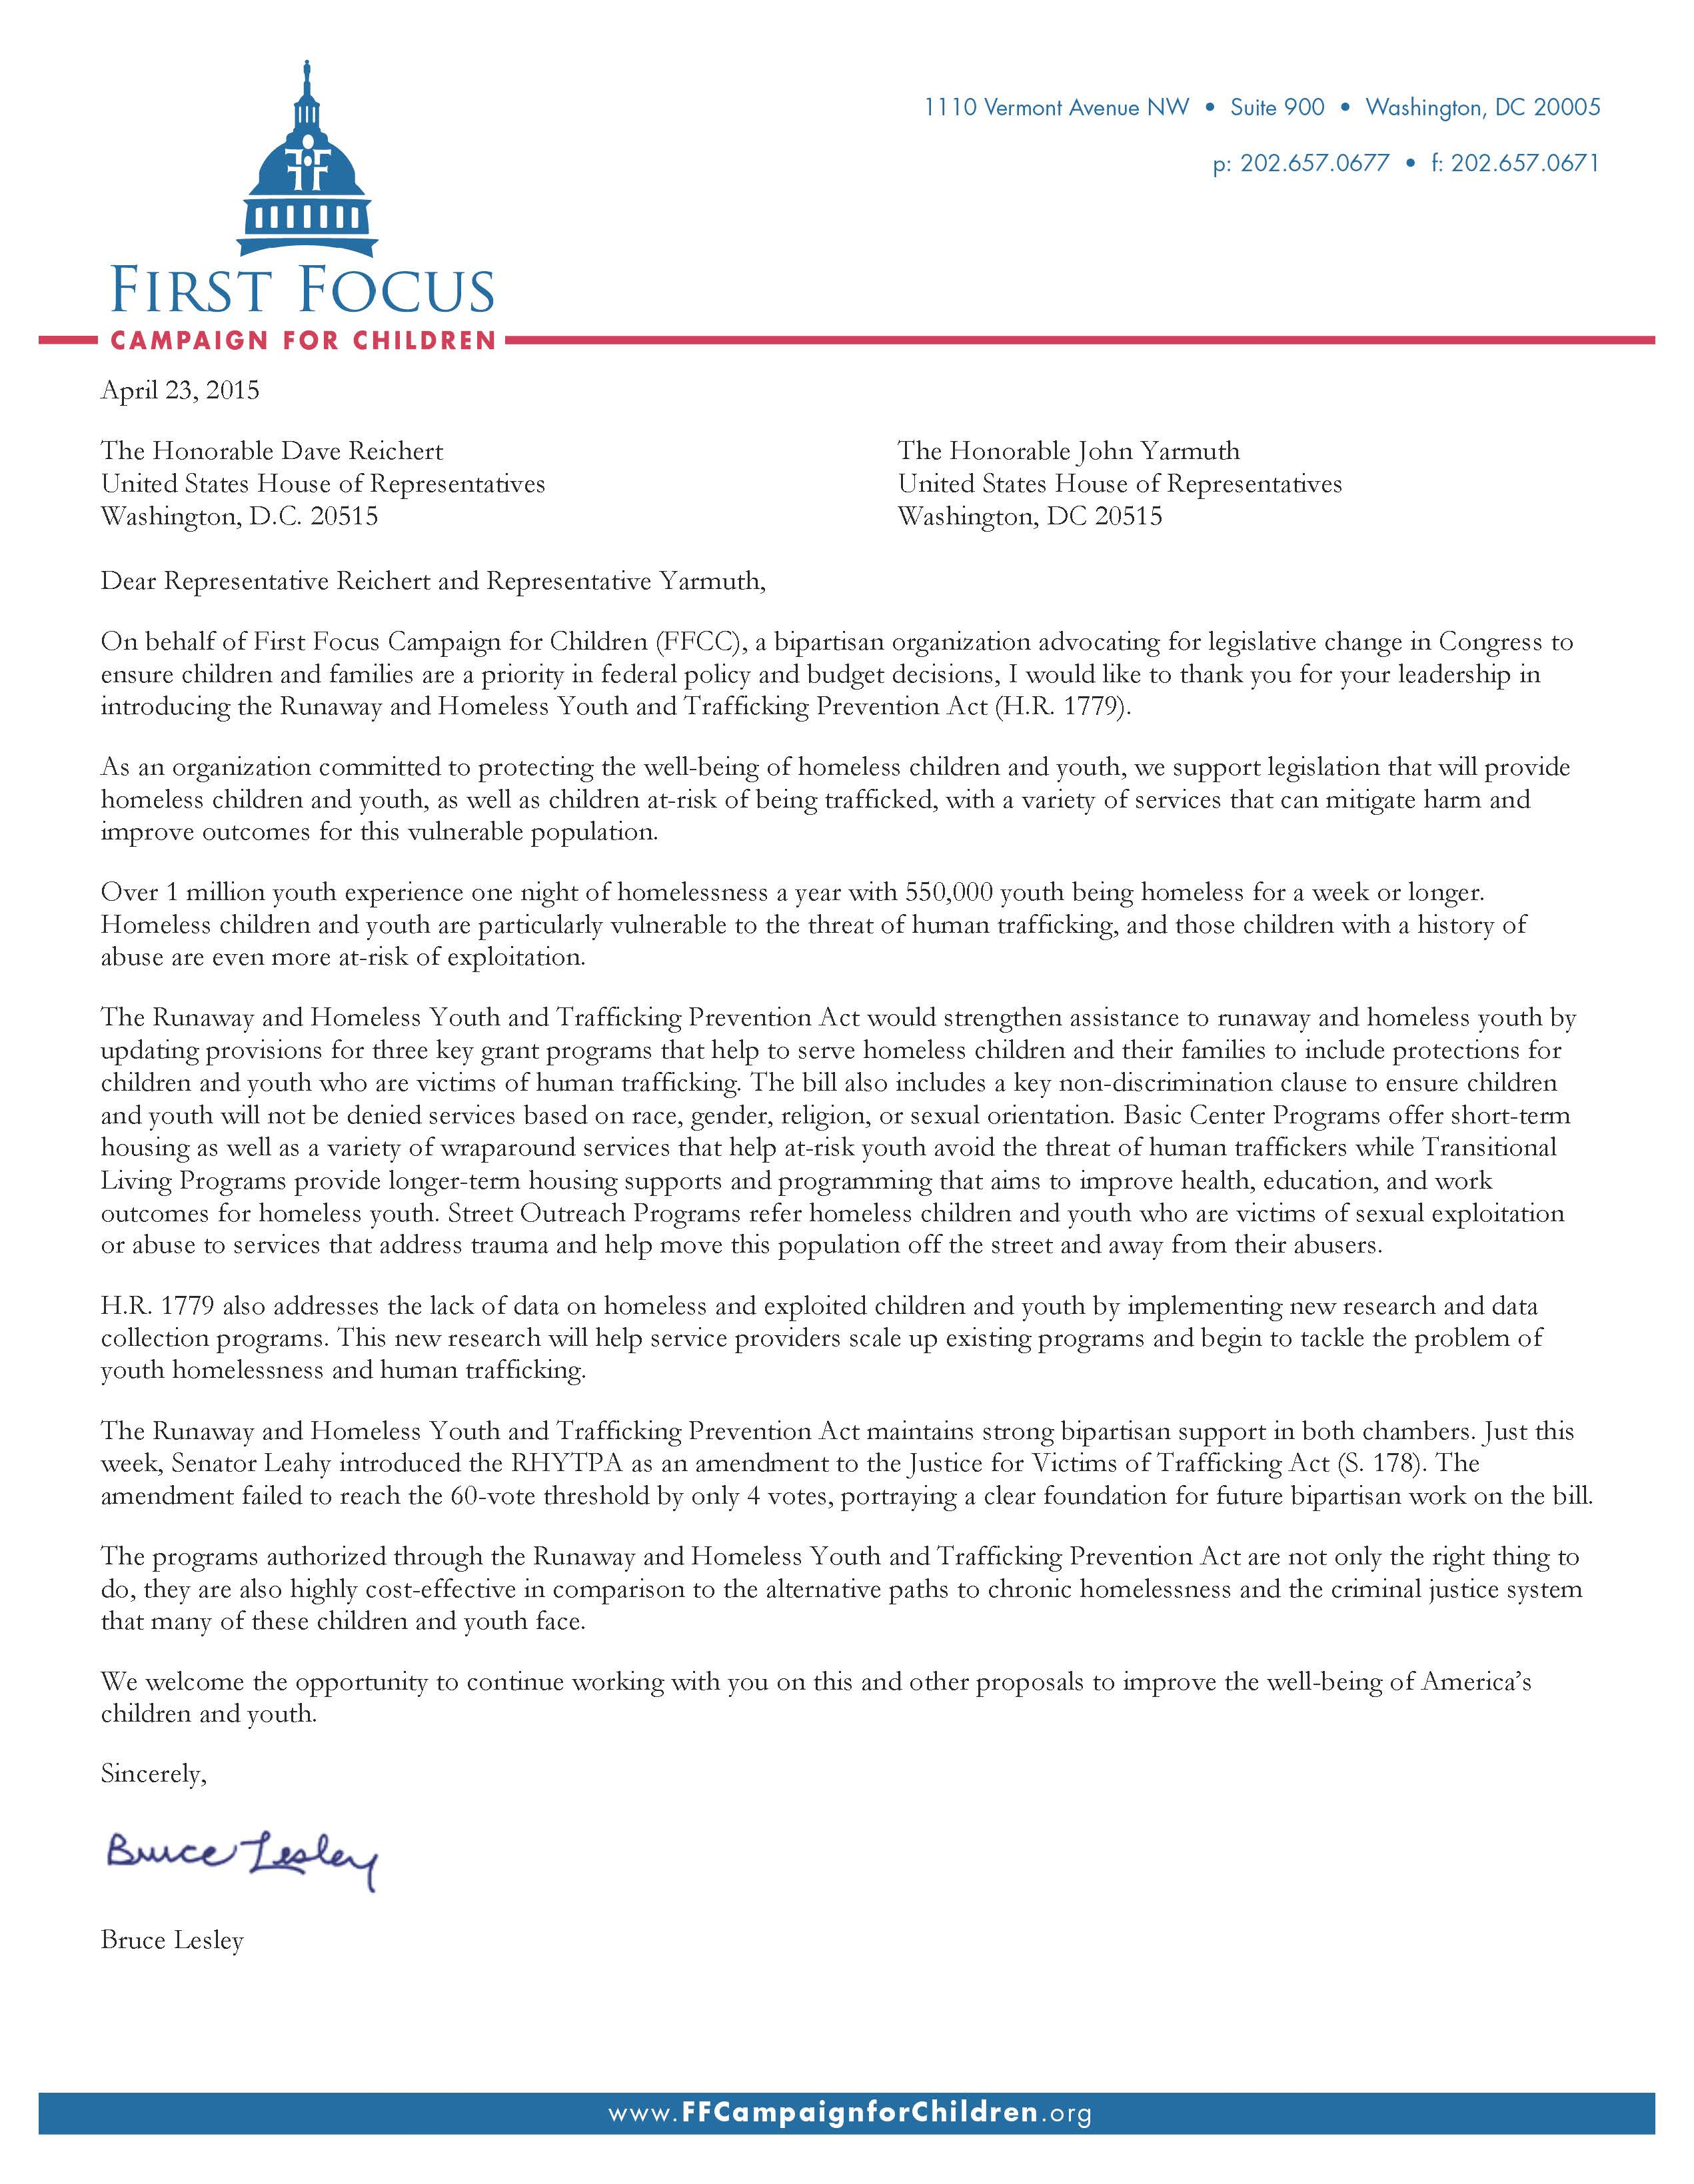 Support for the Runaway and Homeless Youth and Trafficking Prevention Act